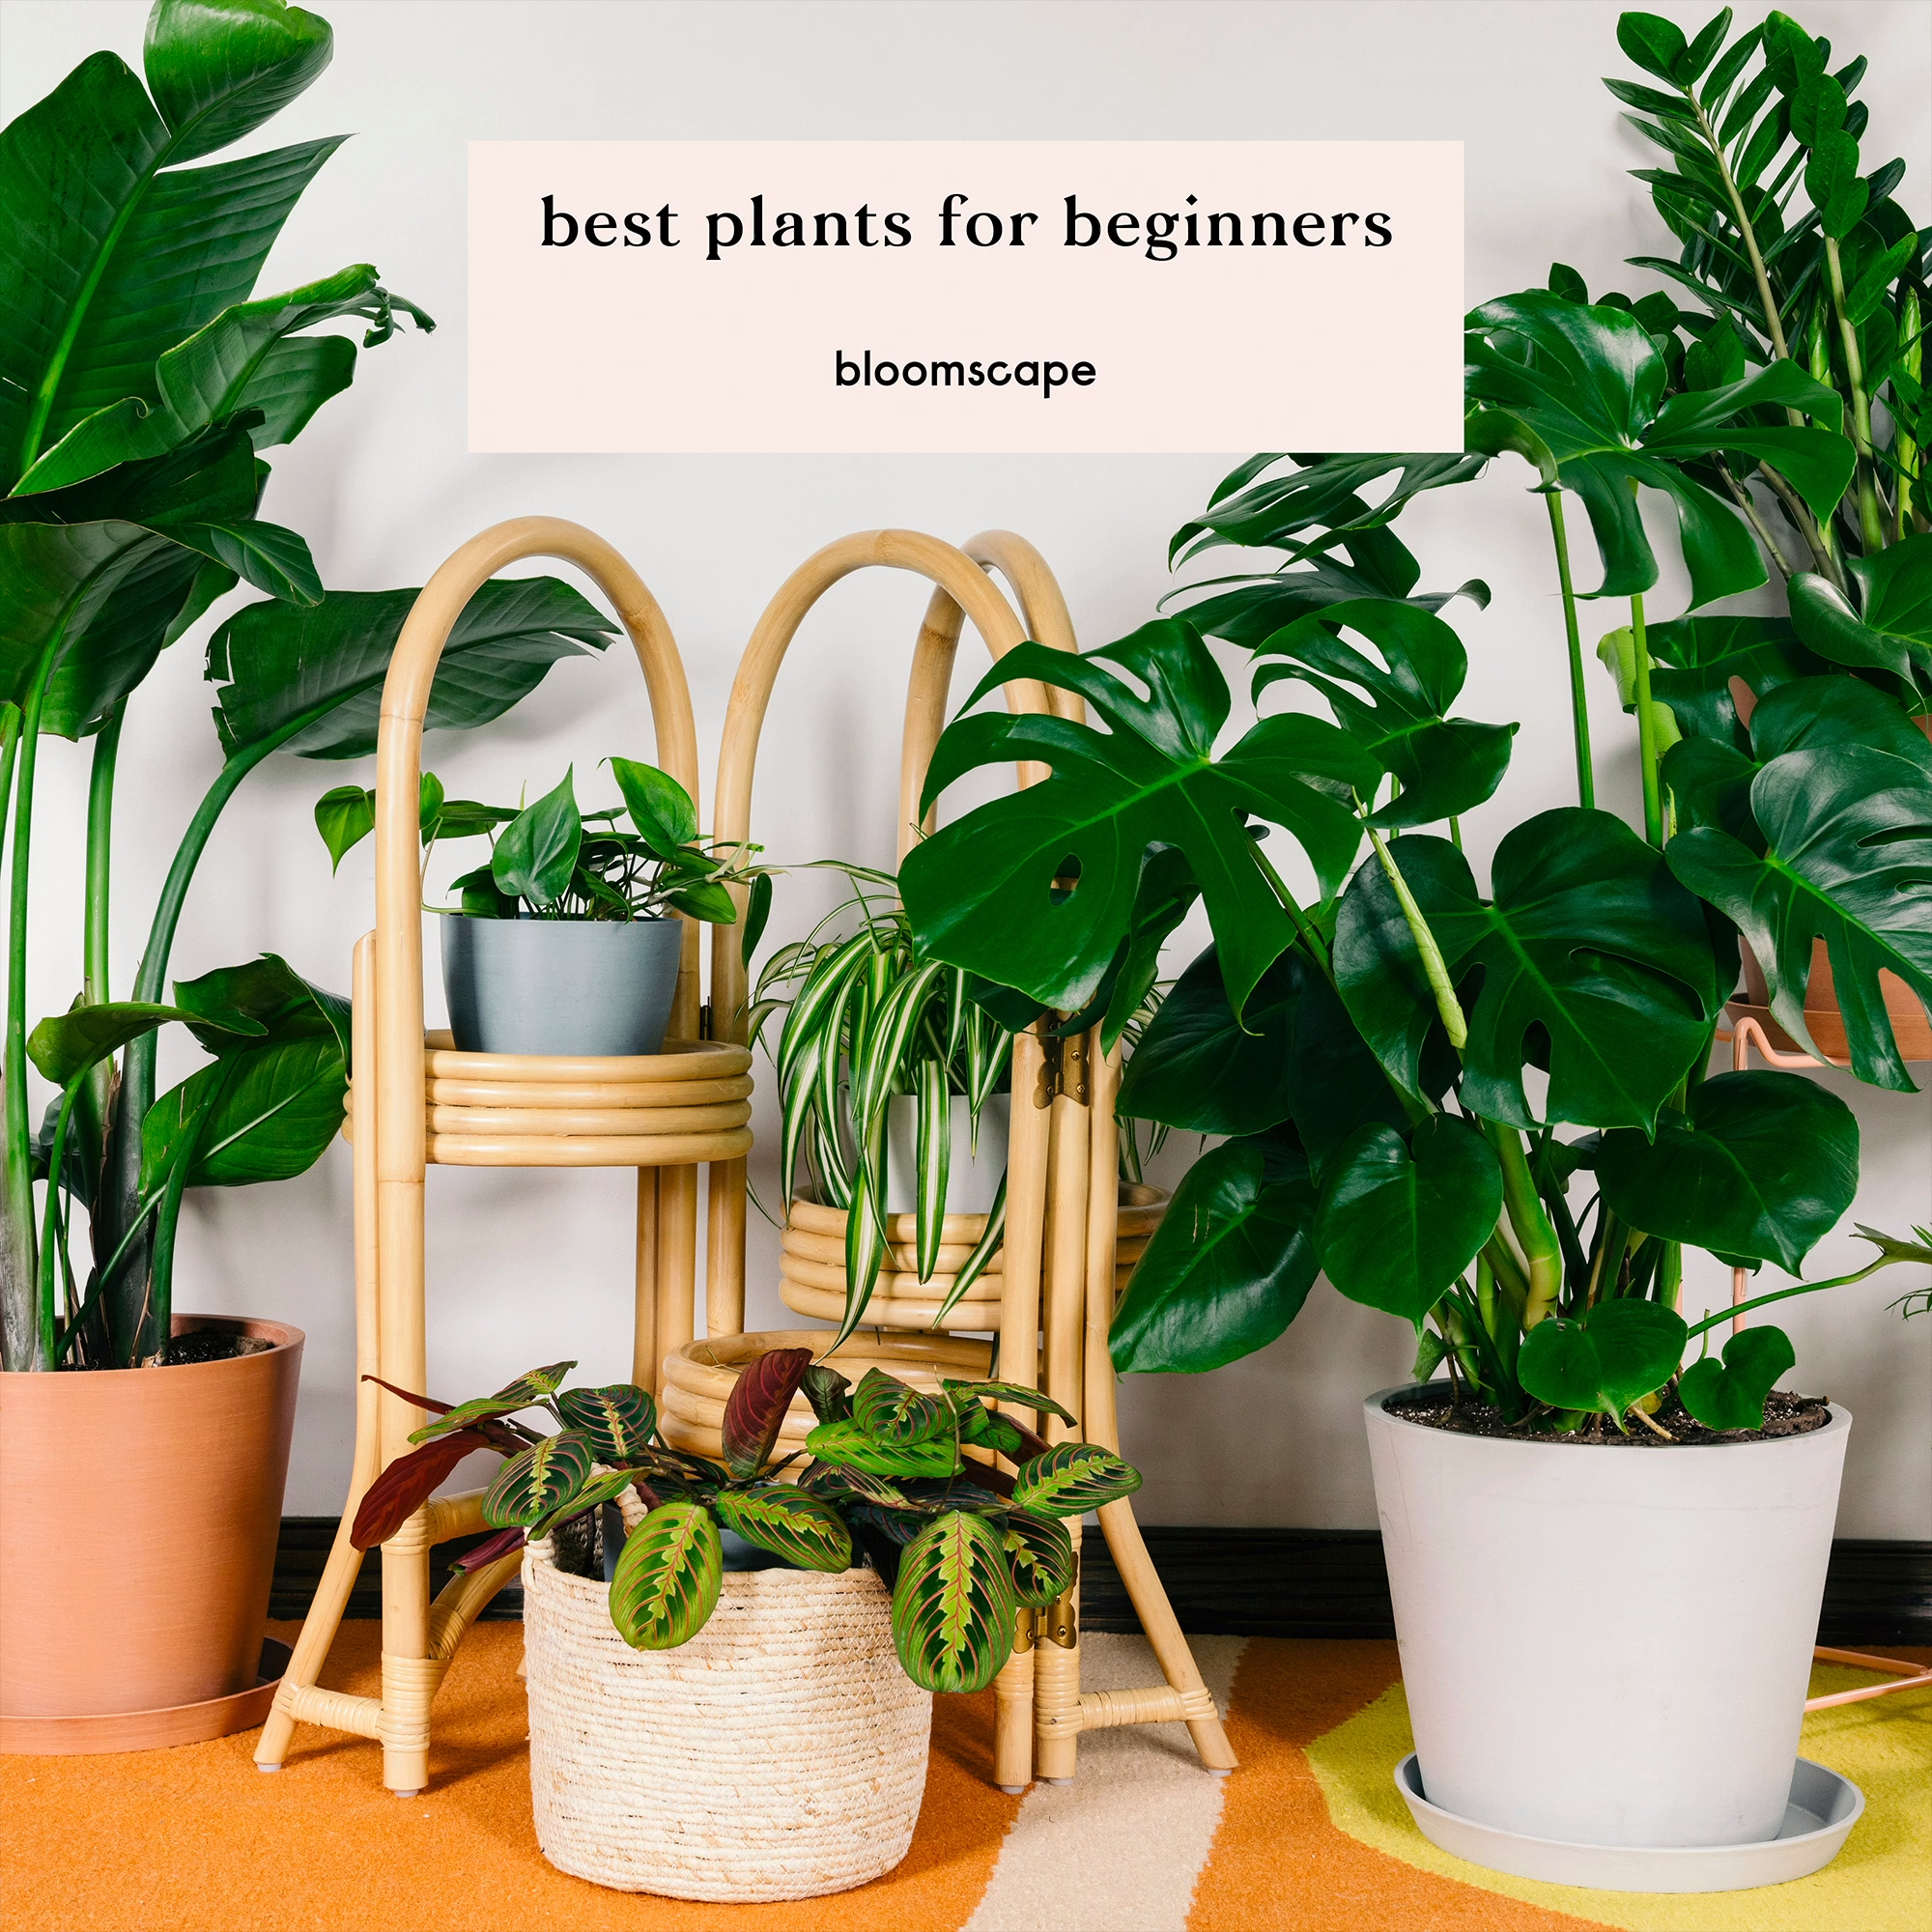 Bring your home to life with easy-to-care-for indoor plants #indoorgarden